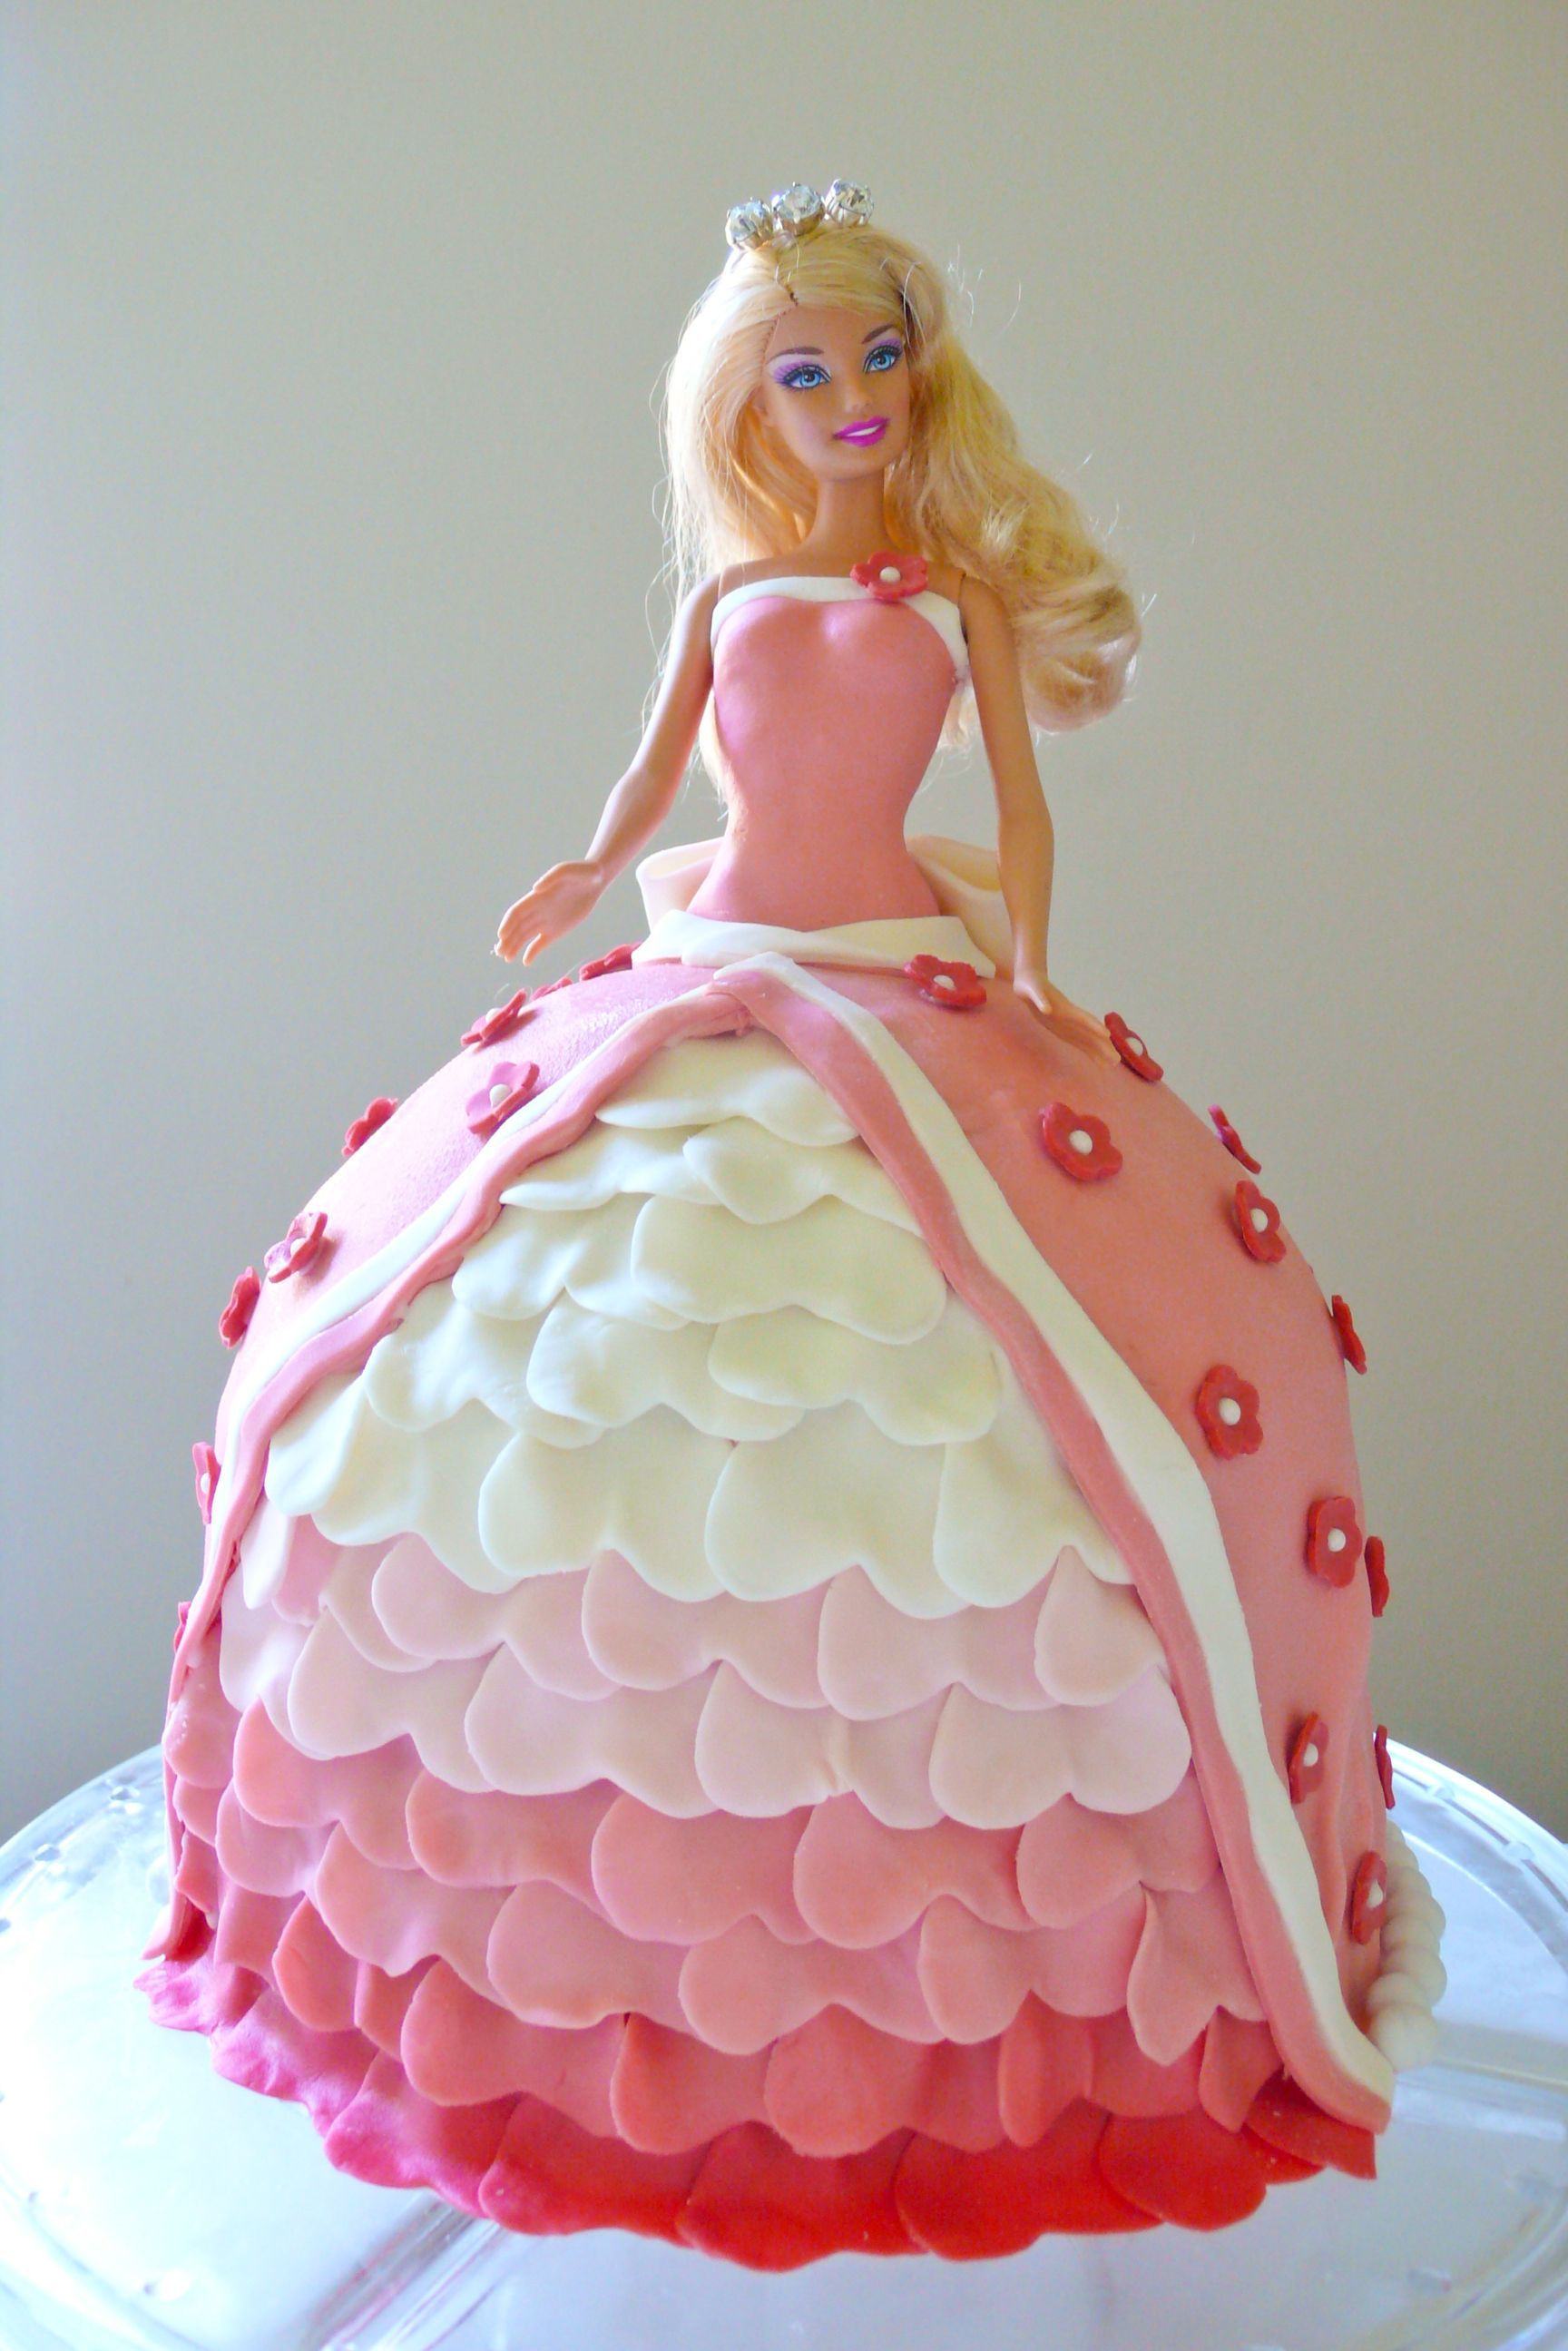 Princess Doll Cake Tutorial Decorating Tips And Techniques